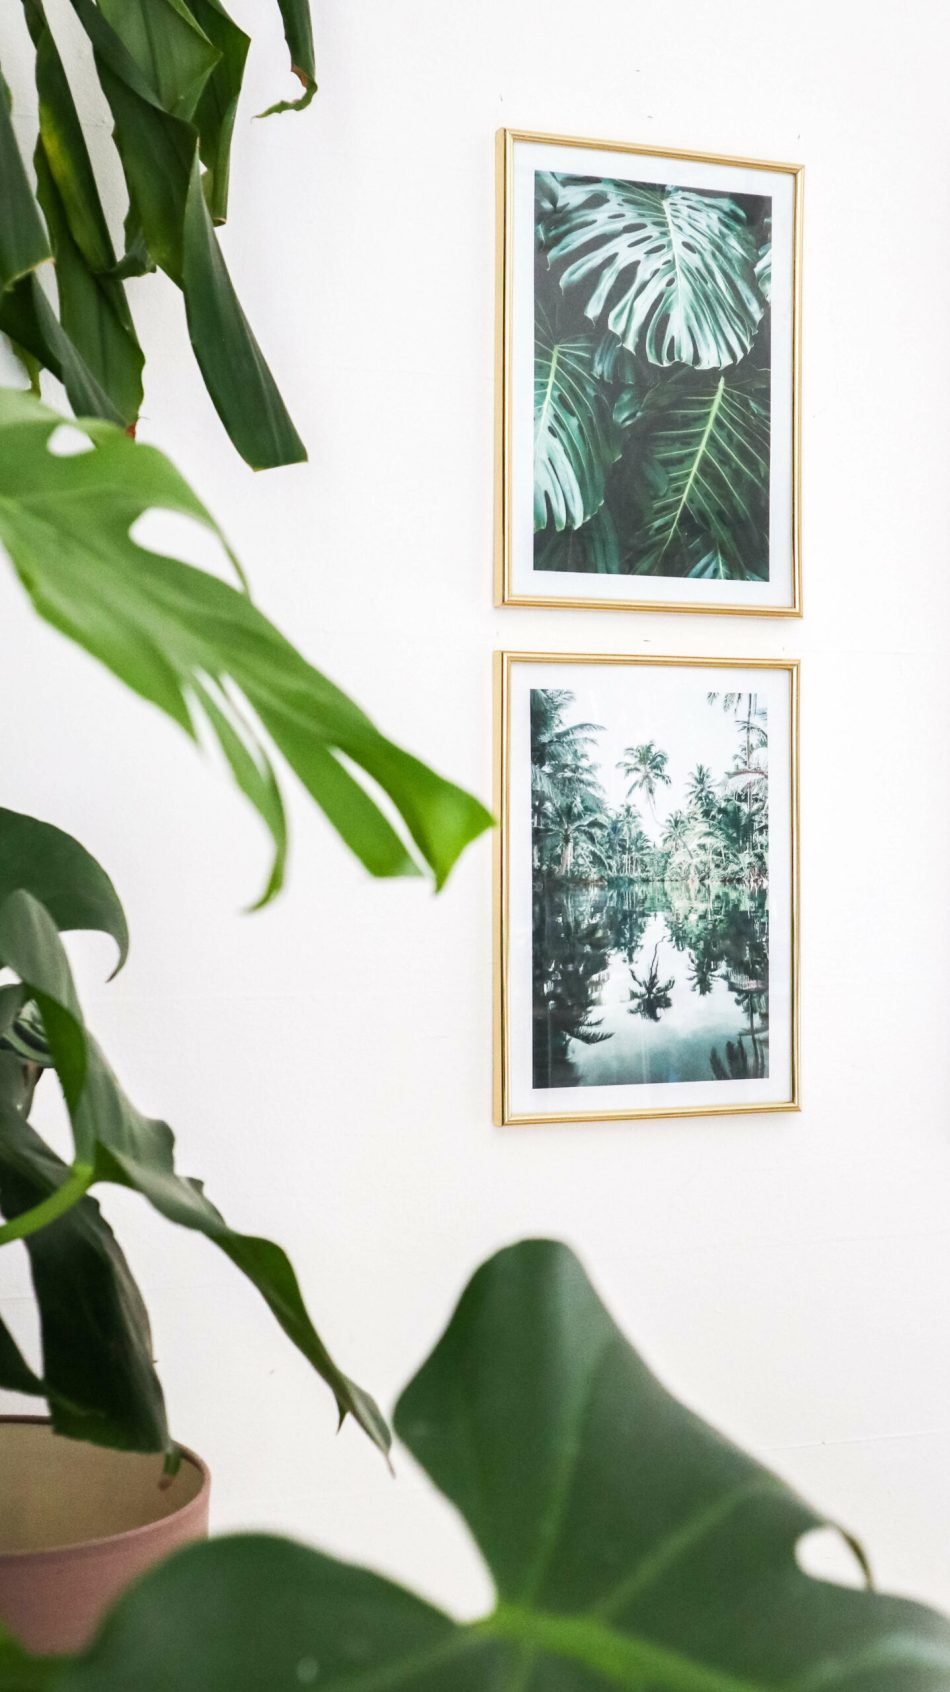 Bali Touch Wohnzimmer Inspo Posterstore Dschungle Jungle Vibes Poster Store kardiaserena